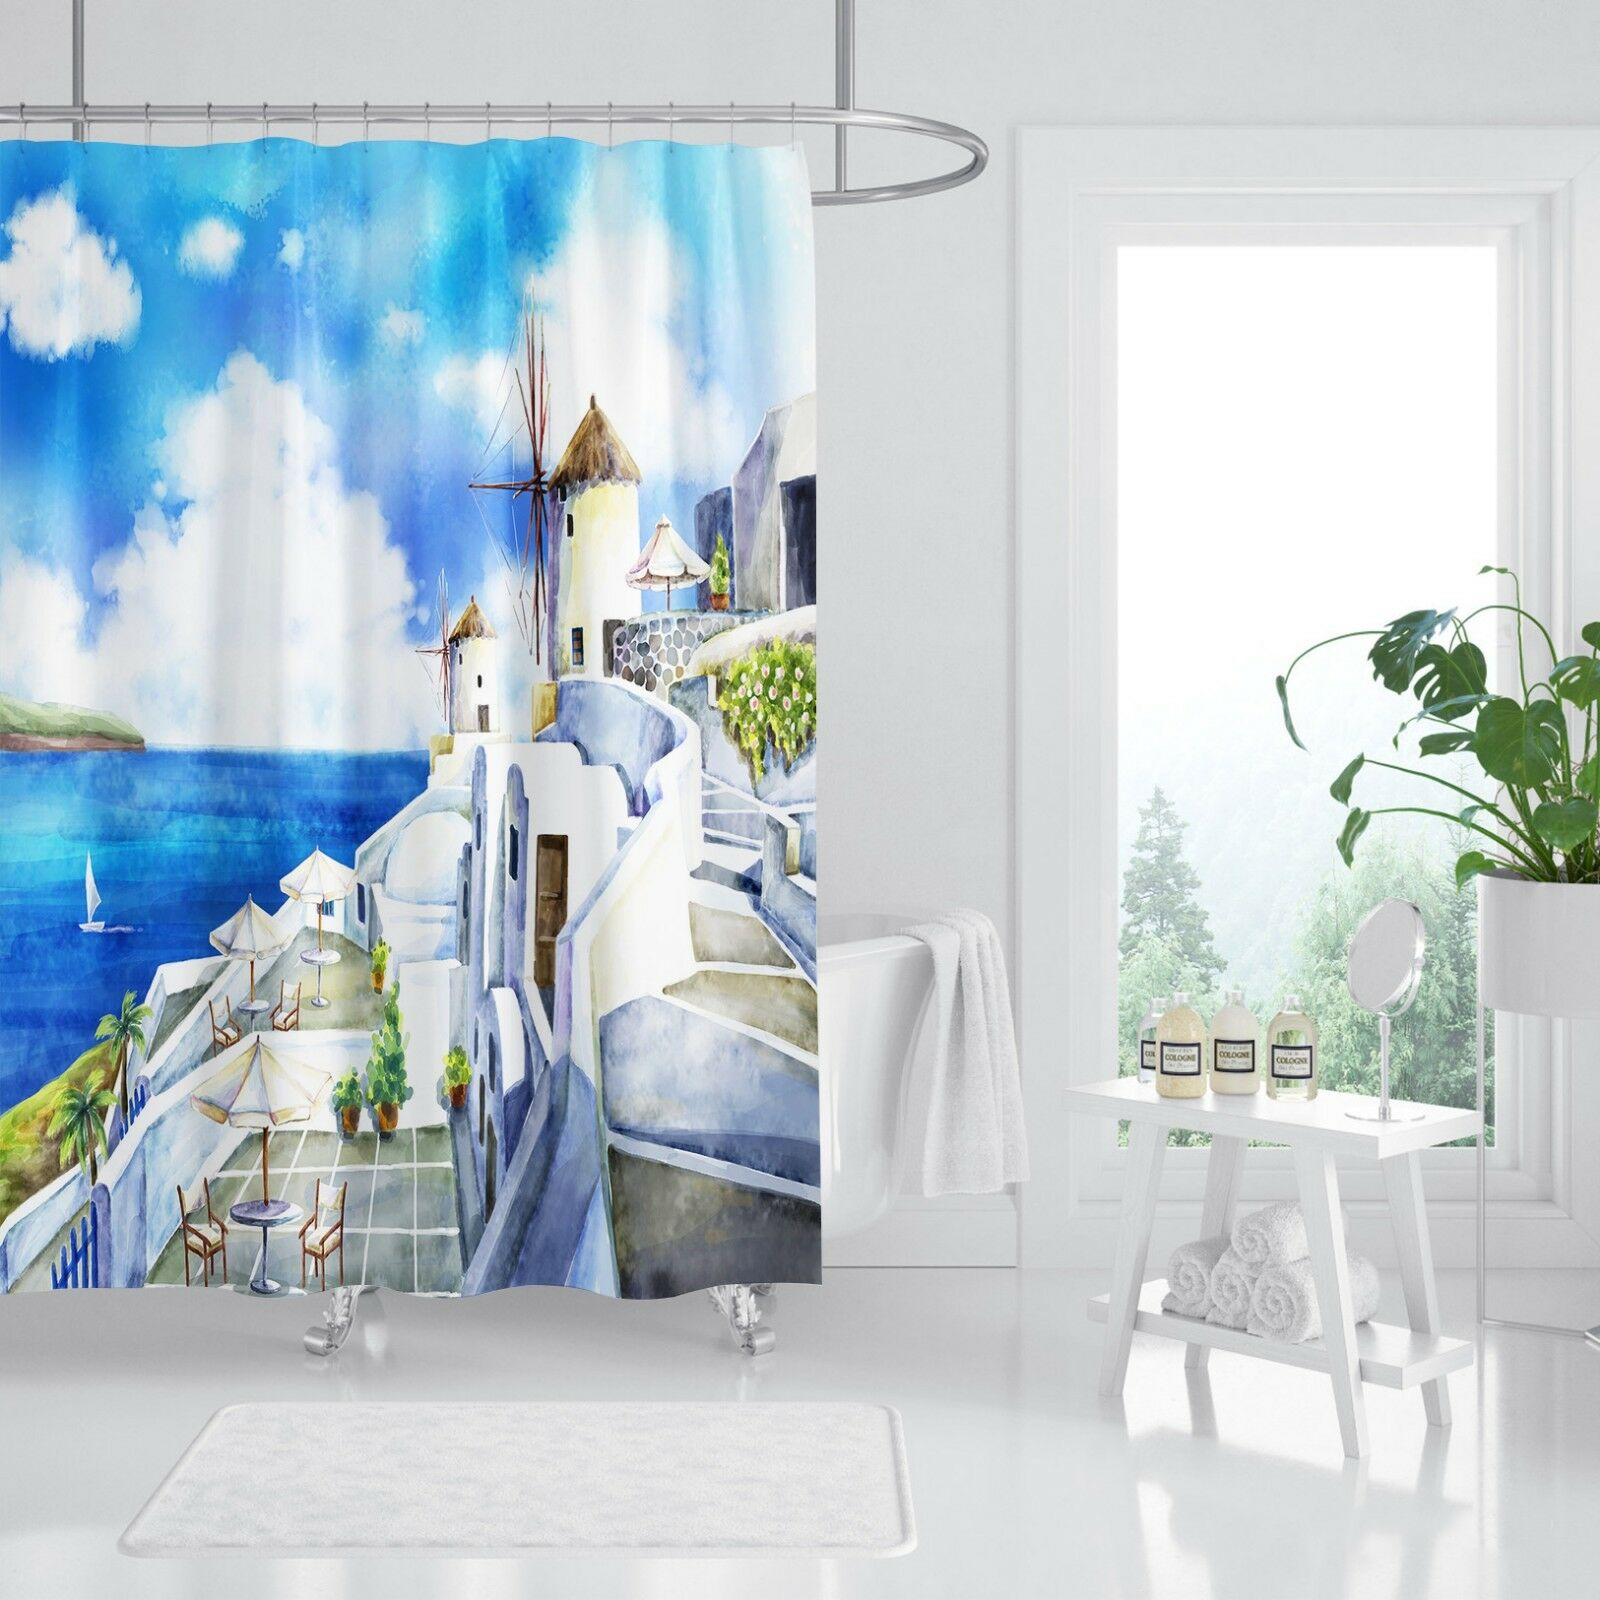 3D Sea View Cabin 8 Shower Curtain imperméable Fiber Bathroom Home Windows Toilet